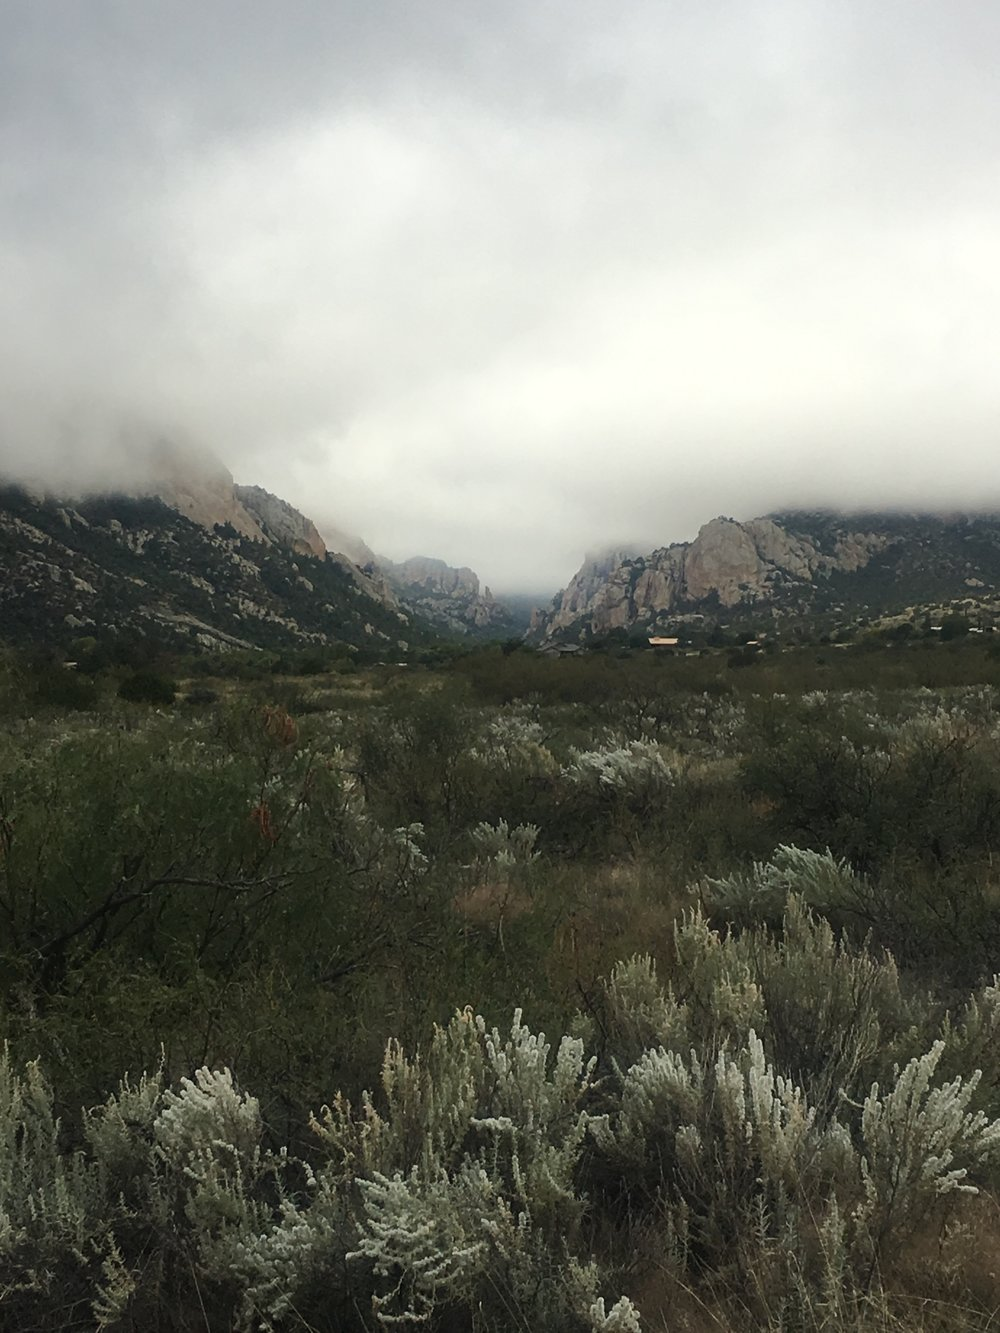 iPhone image of the entrance to Cave Creek Canyon in the cloudy gloom